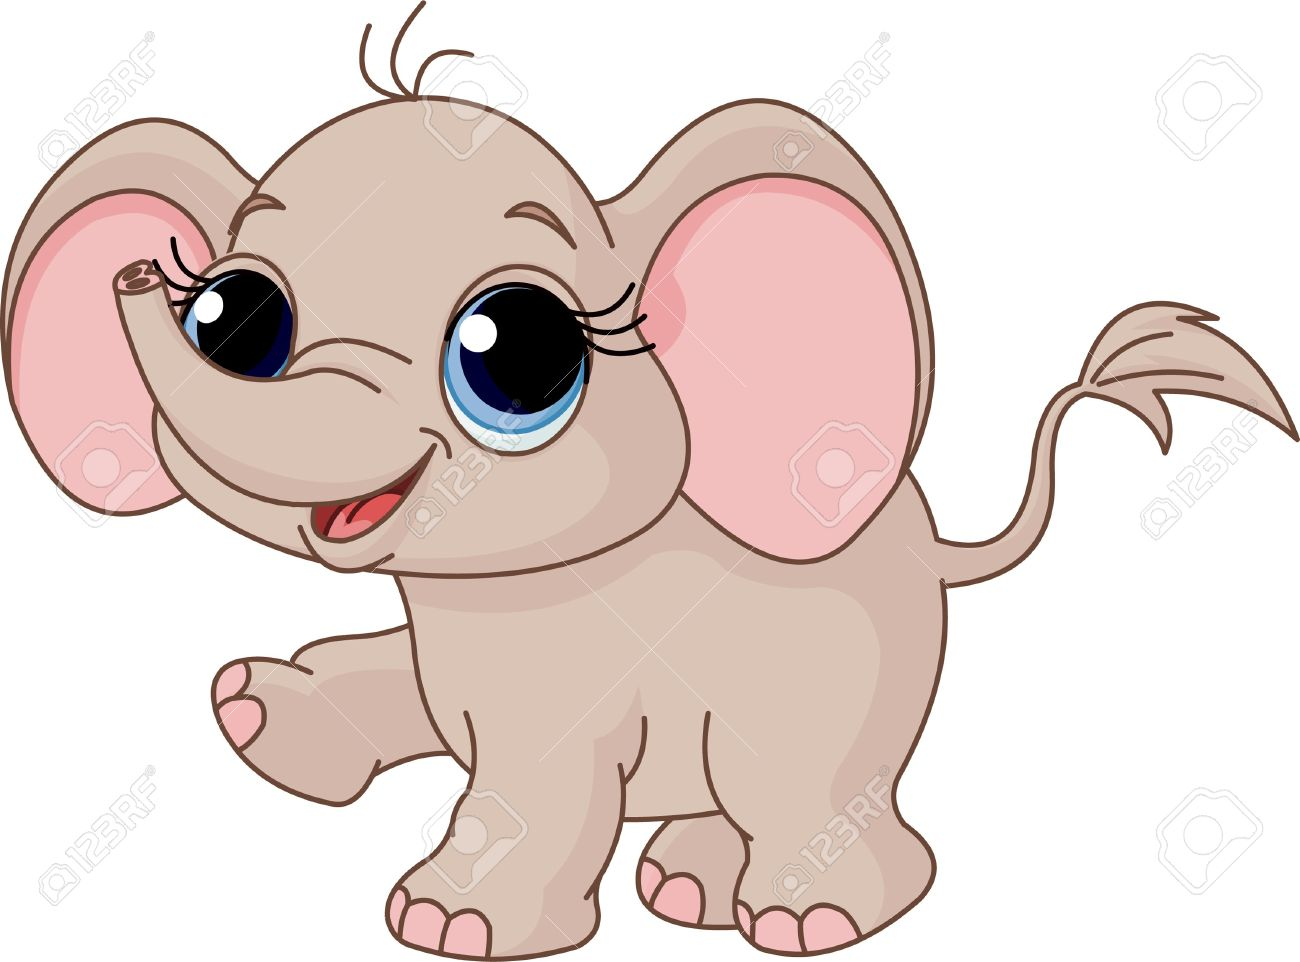 illustration of cute and funny baby elephant royalty free cliparts